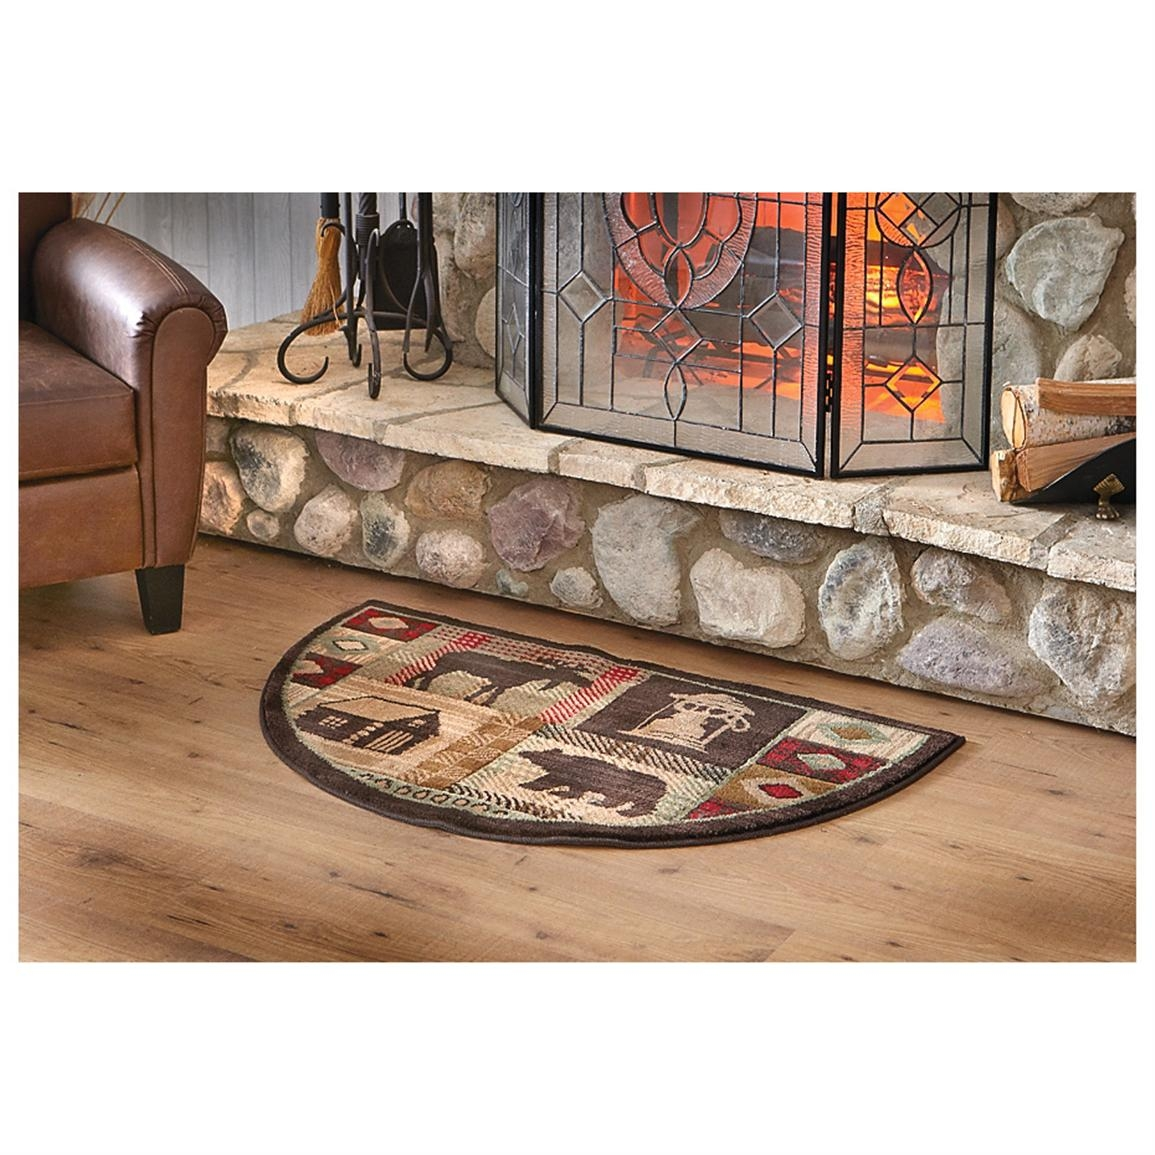 Featured Image of Hearth Rugs